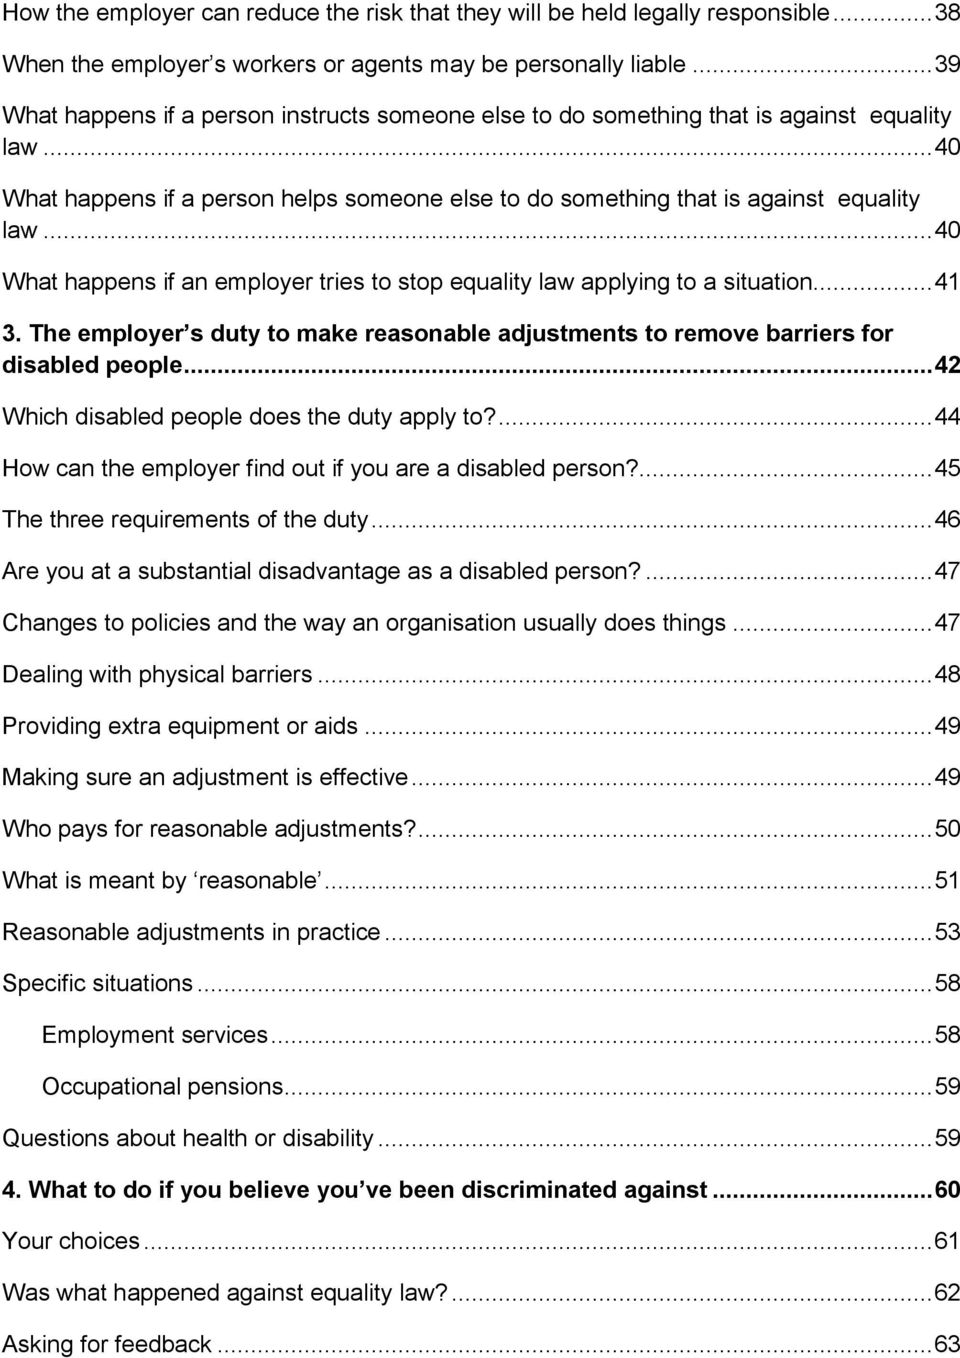 .. 40 What happens if an employer tries to stop equality law applying to a situation... 41 3. The employer s duty to make reasonable adjustments to remove barriers for disabled people.